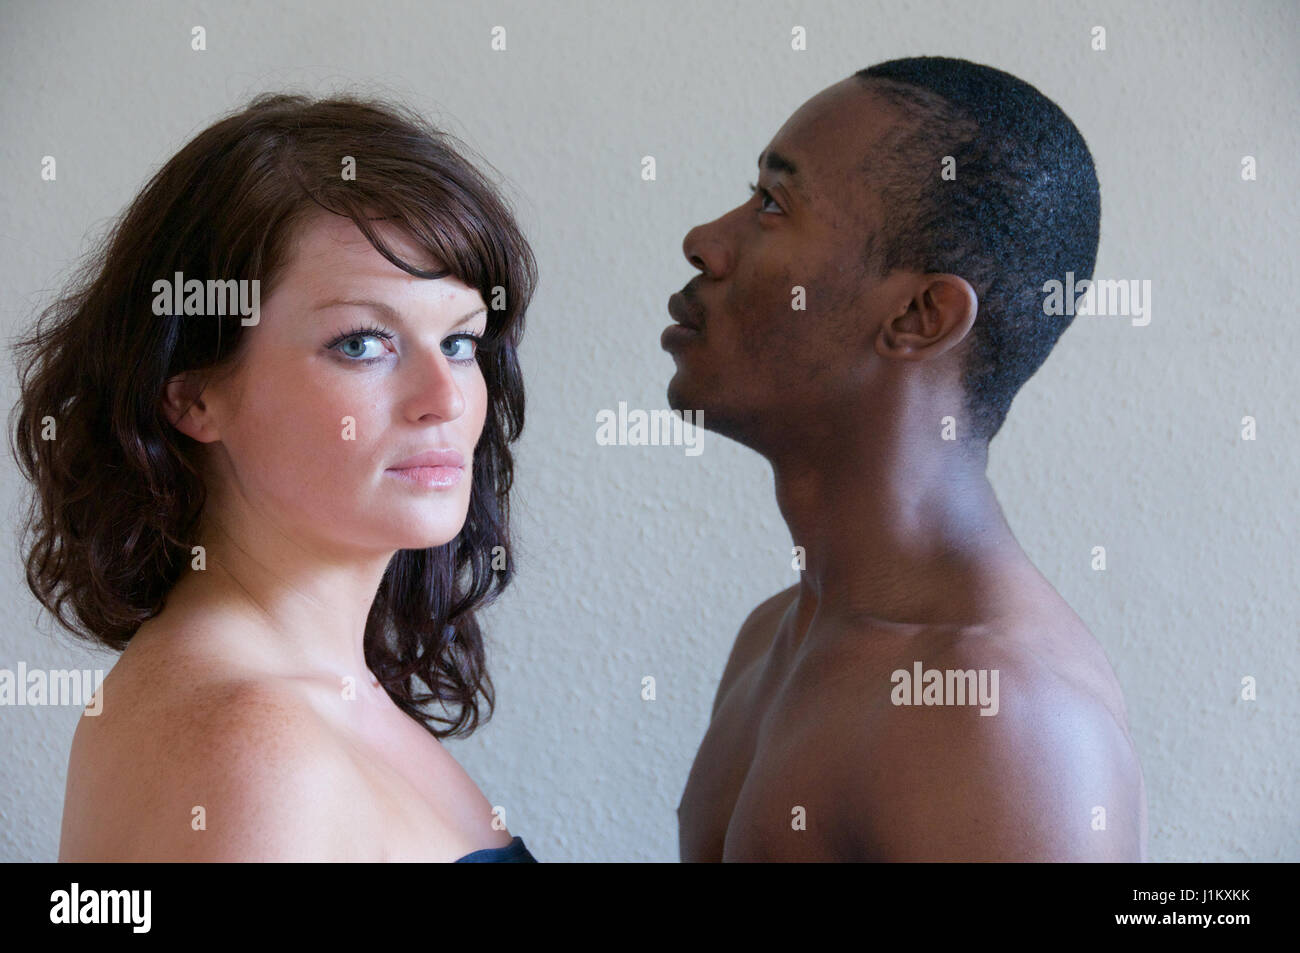 Girl to white guys attracted black 7 Qualities